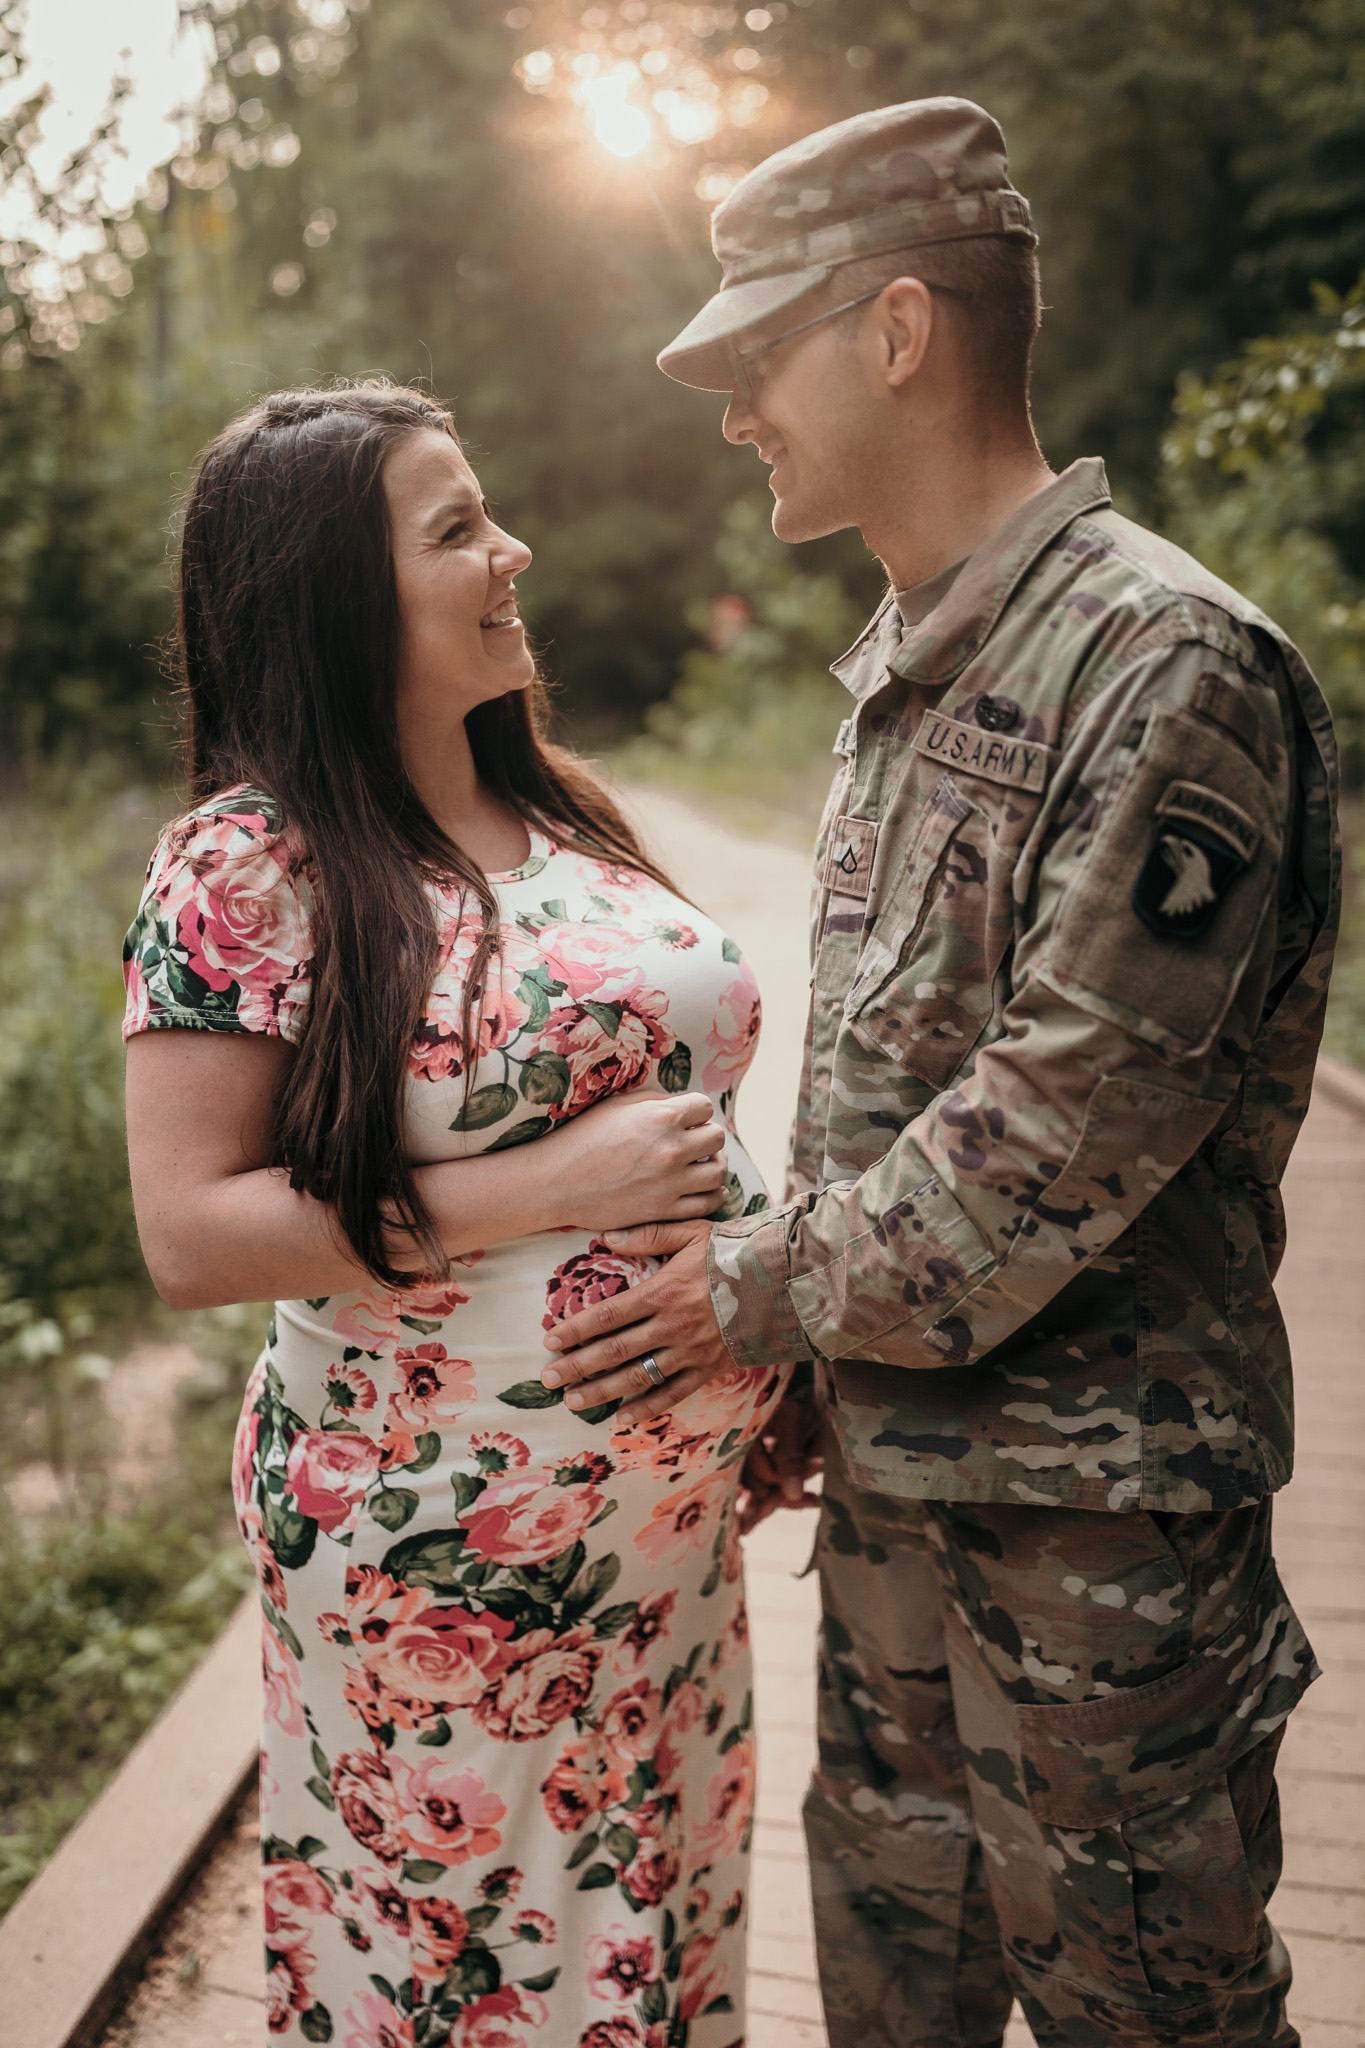 maternity photo with army uniform